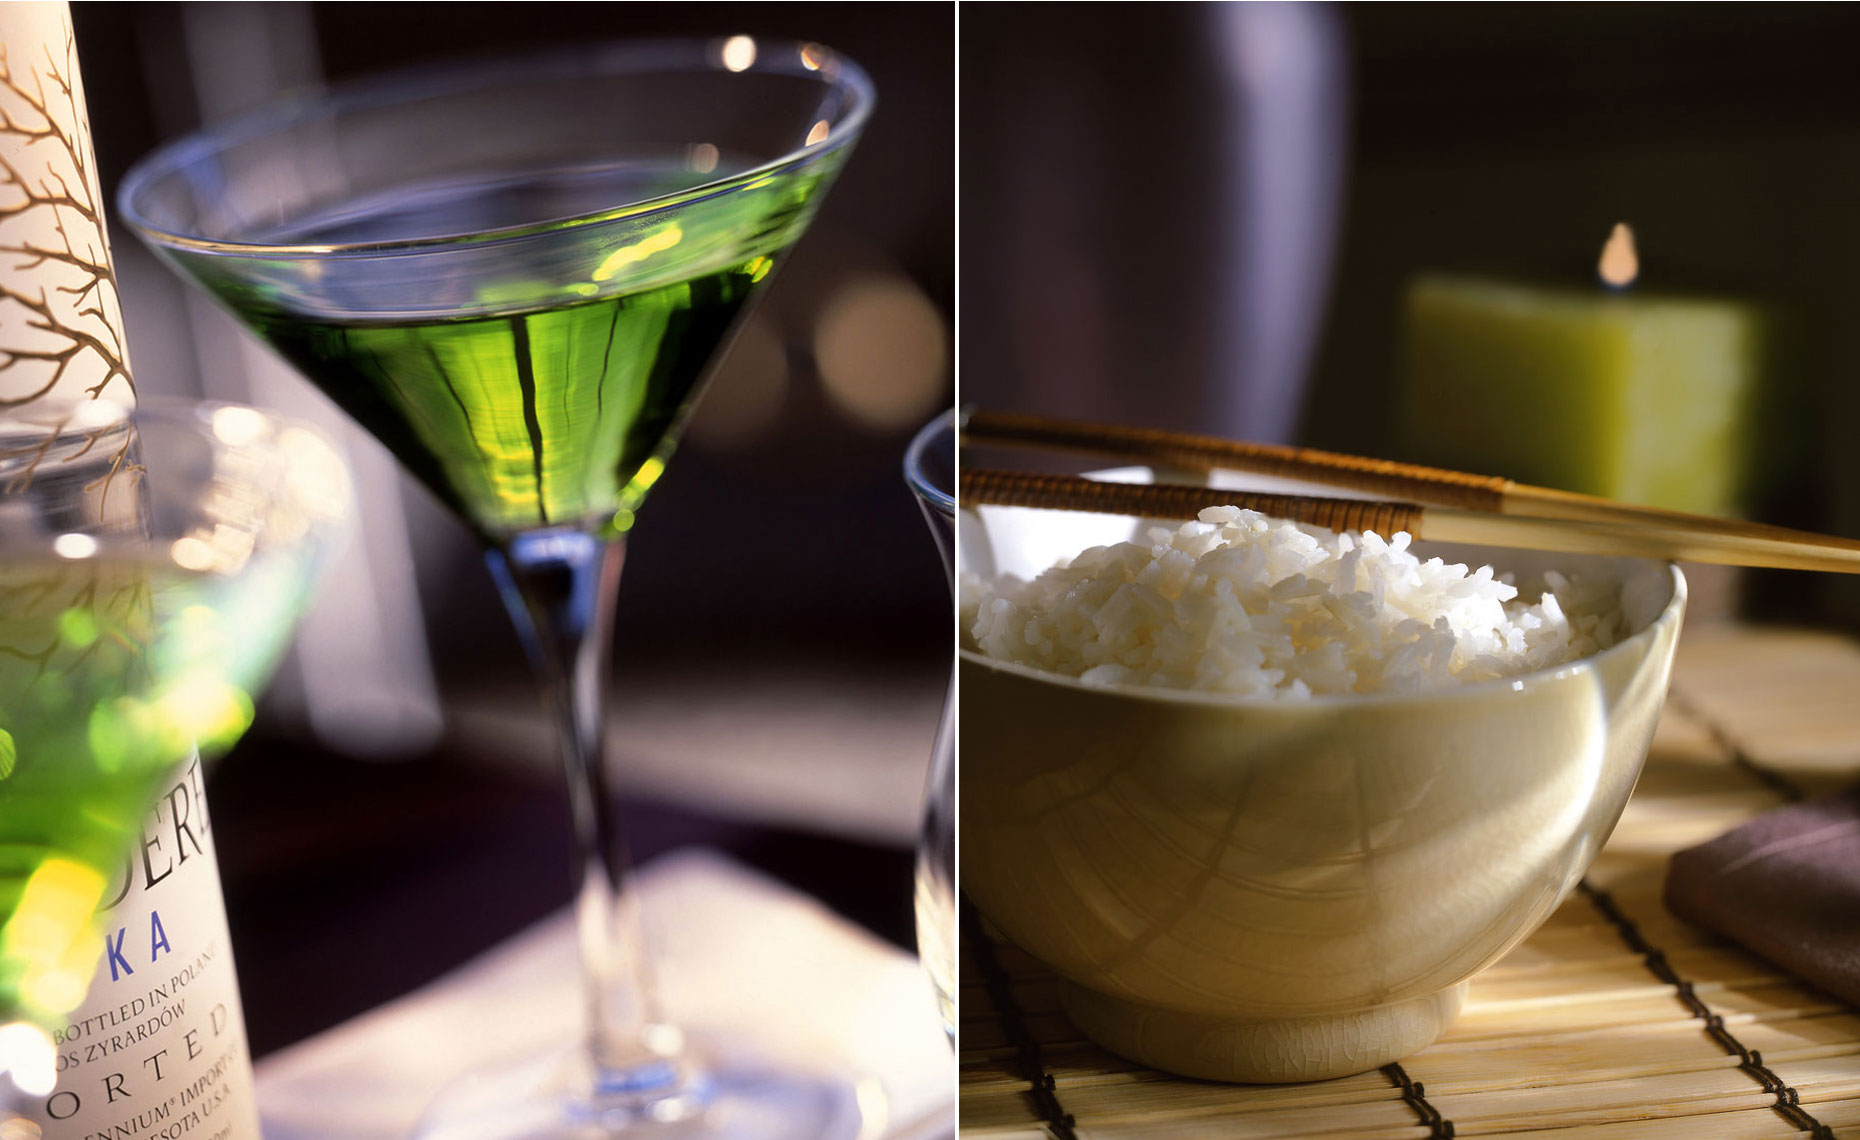 jeff-green-green-apple-martini-and-rice-bowl